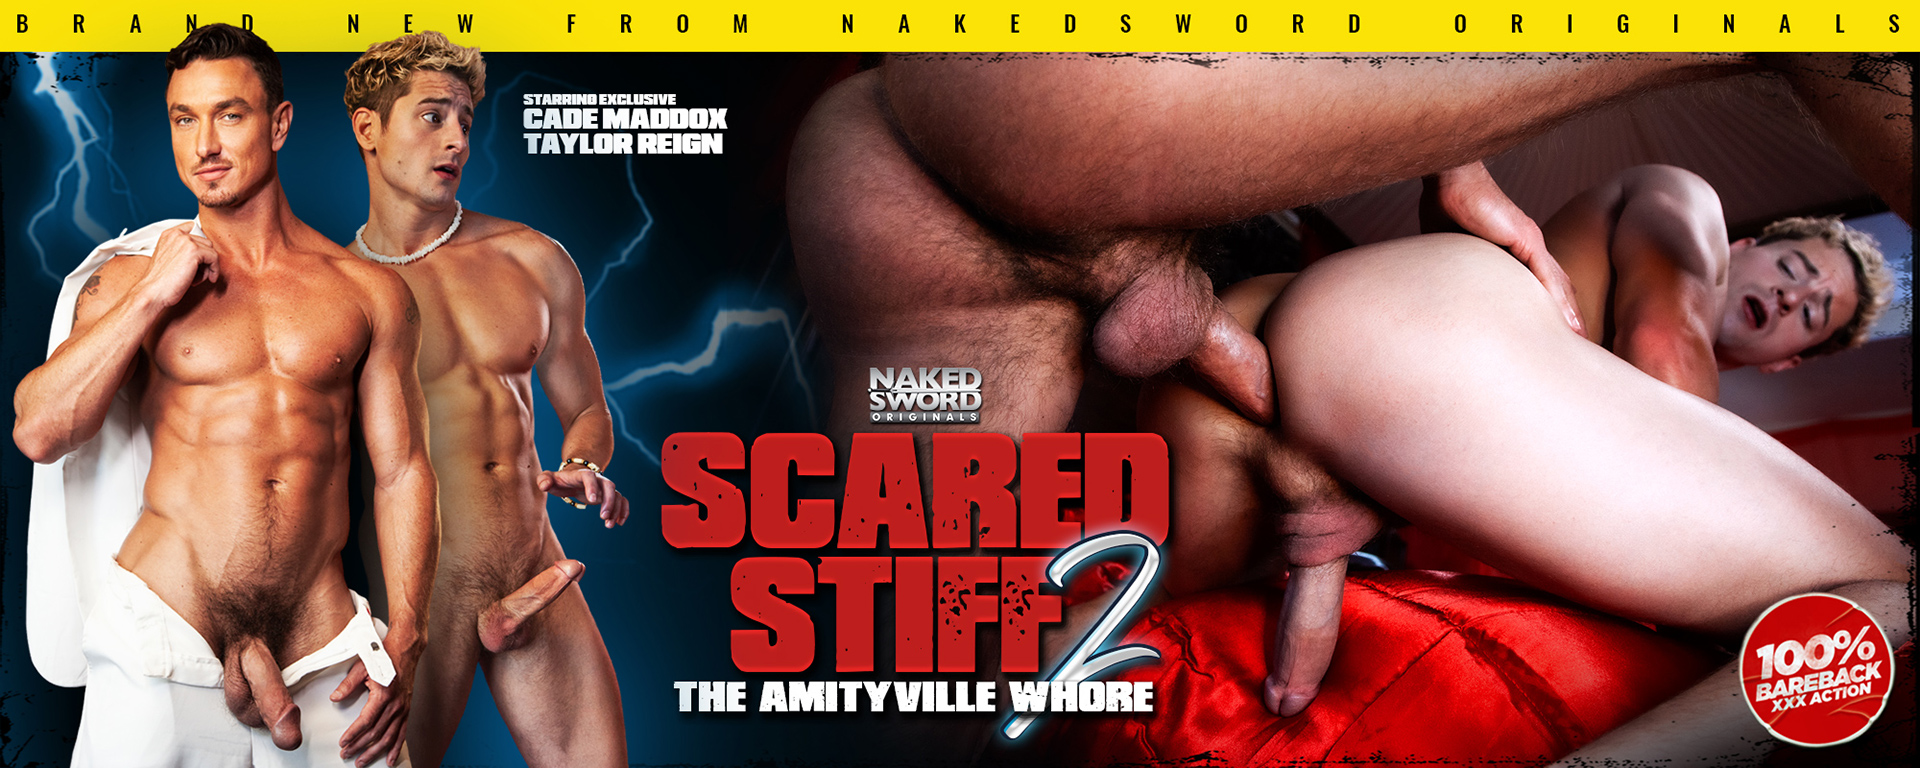 Scared Stiff 2: Amityville Whore Episode 2: Demon Semen Featuring Cade Maddox and Taylor Reign